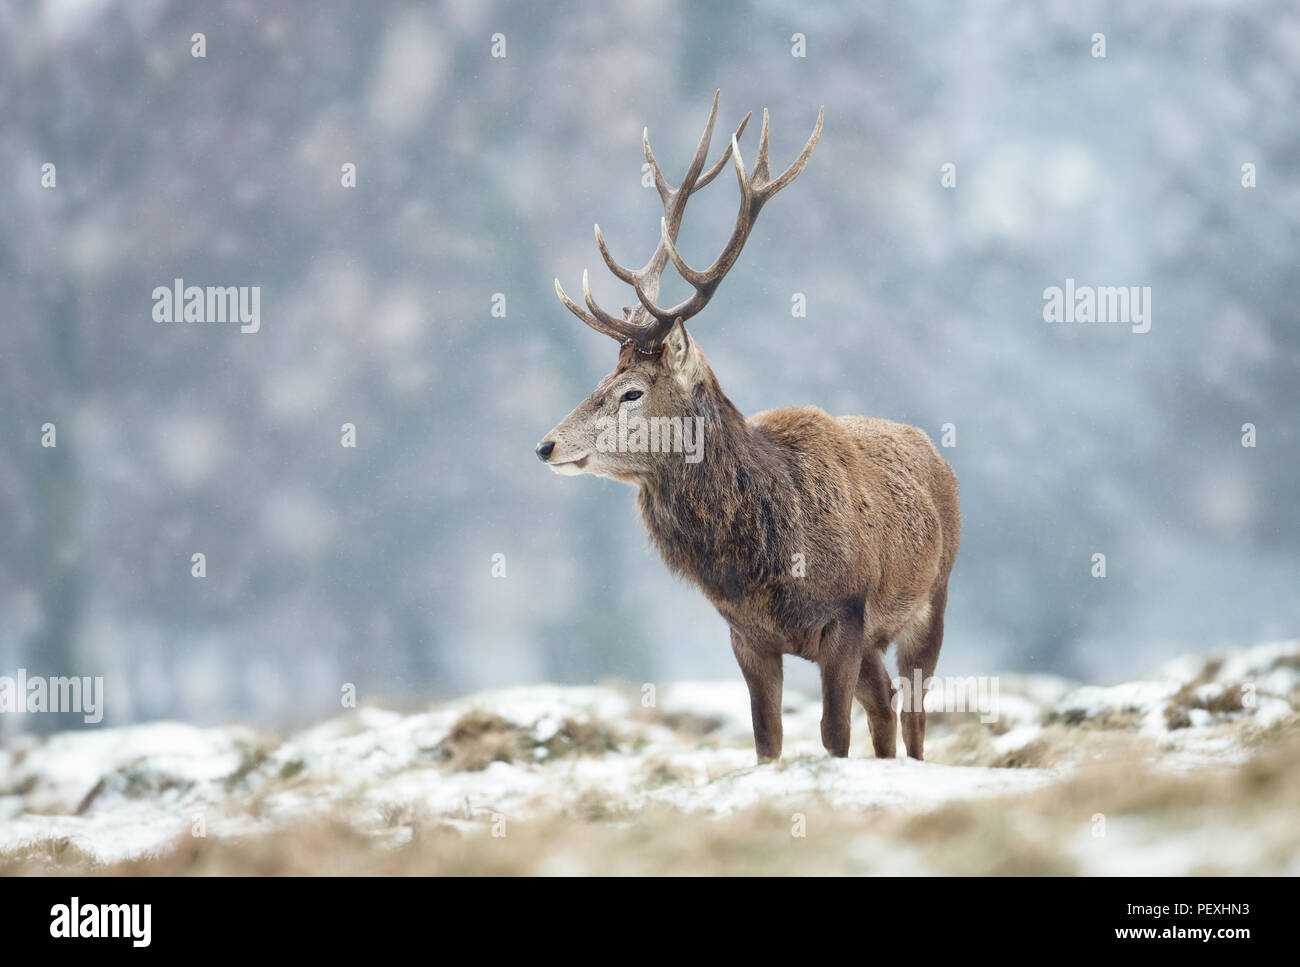 Close up of a Red deer stag standing on the ground covered with snow during winter in UK . - Stock Image